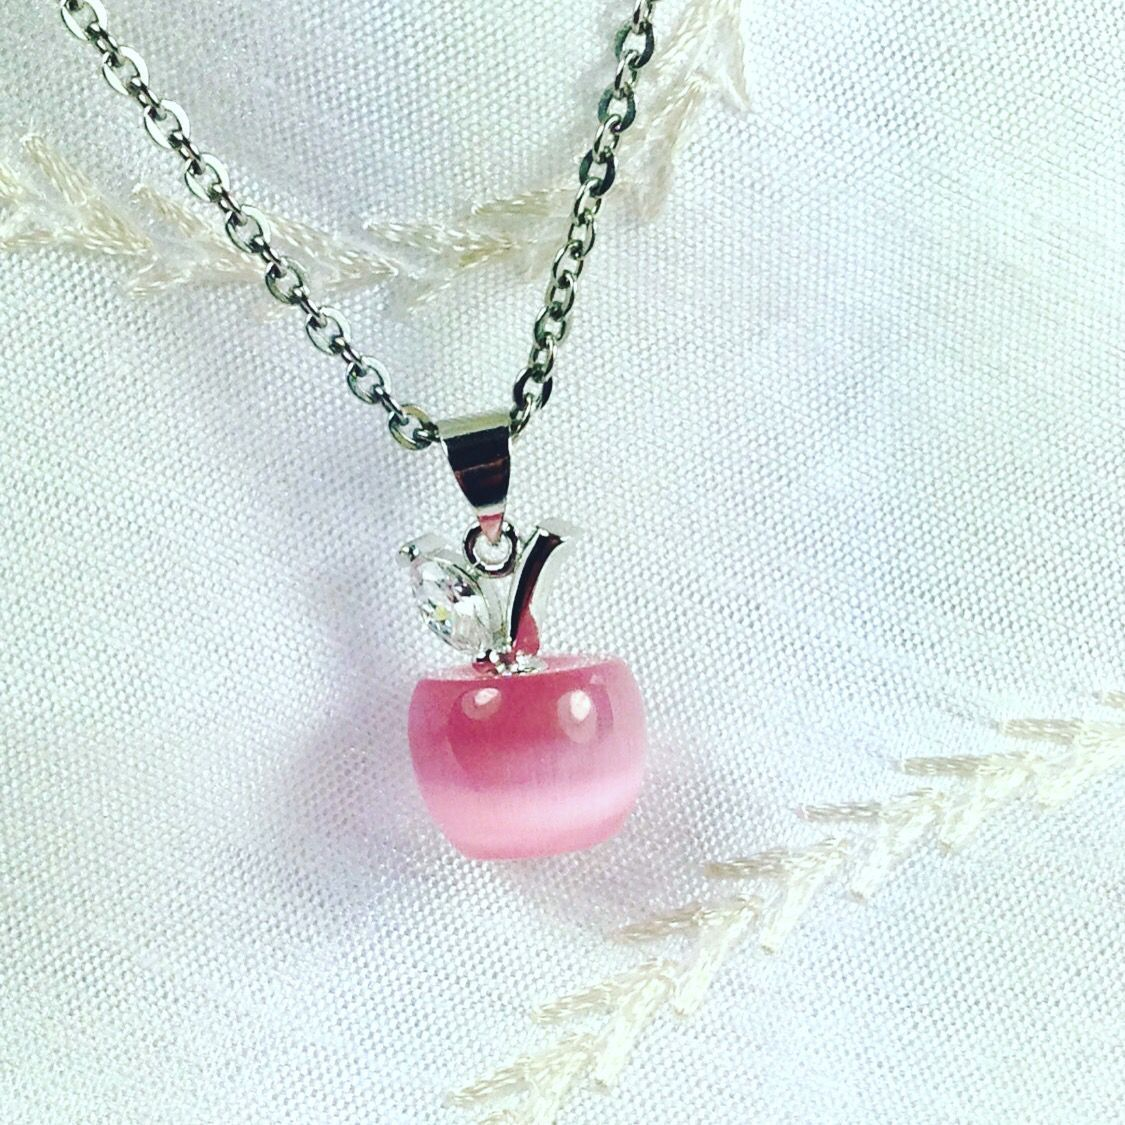 Cat&#39;s Eye #Apple #Necklace w/ #Crystal Leaf #Handmade #NorthCoastCottage #Jewelry  https:// buff.ly/2xT0i5E  &nbsp;   #pink #MothersDay #shopping #gift<br>http://pic.twitter.com/xNm9ZjnhT2